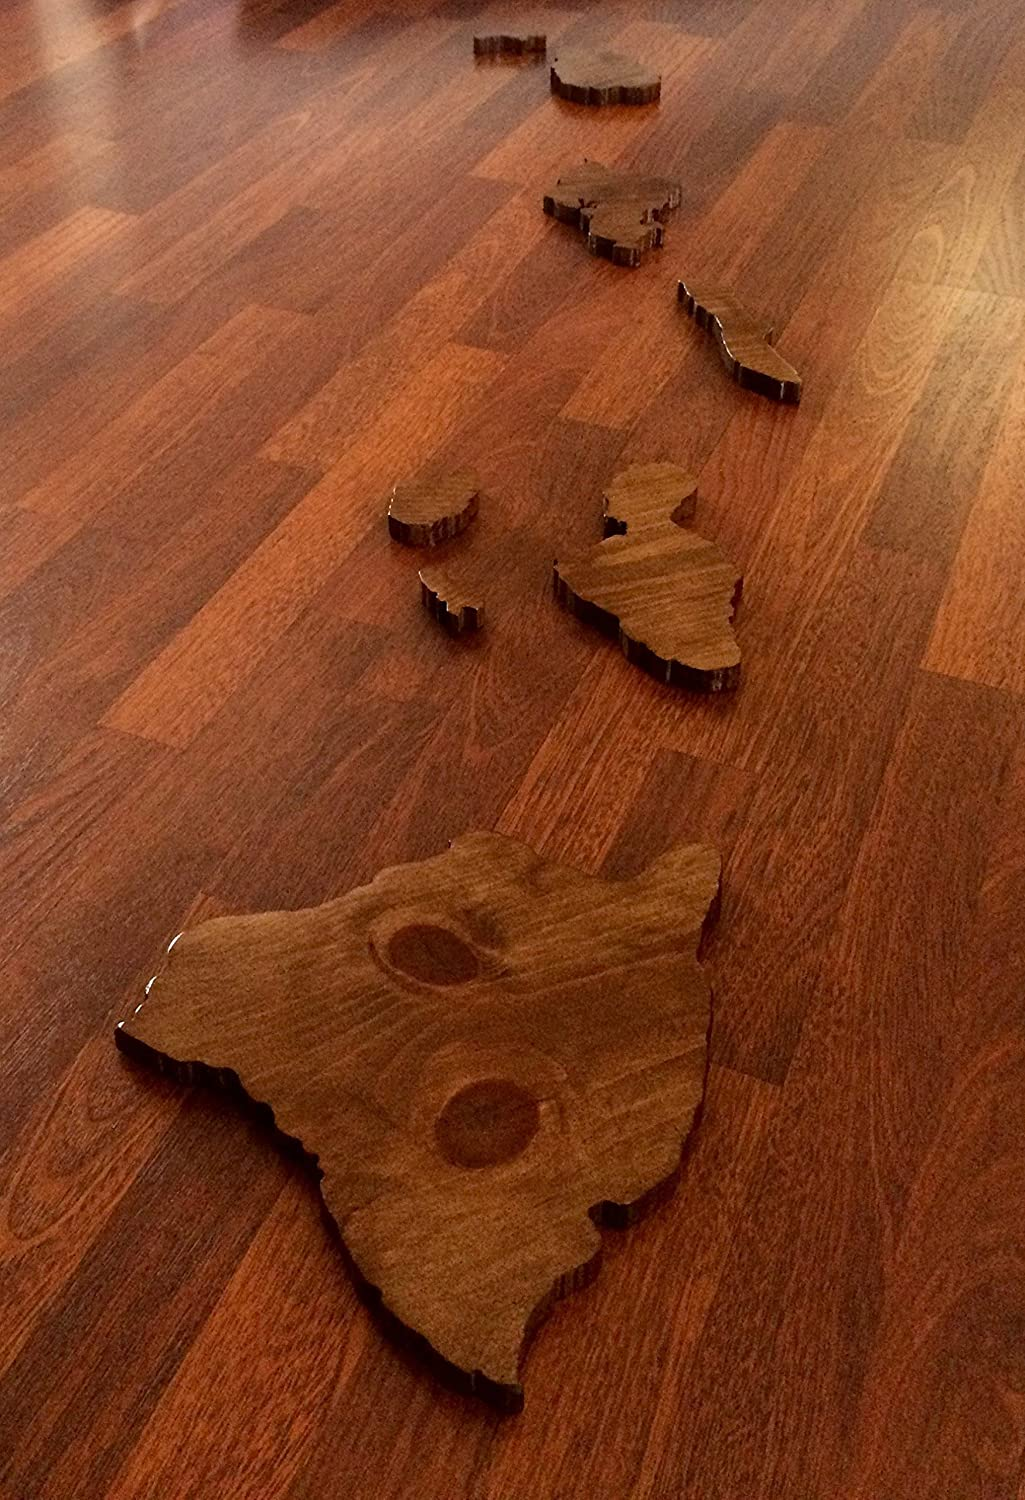 Handcrafted Wooden Hawaiian Island Chain - Wall Art Made with Aloha